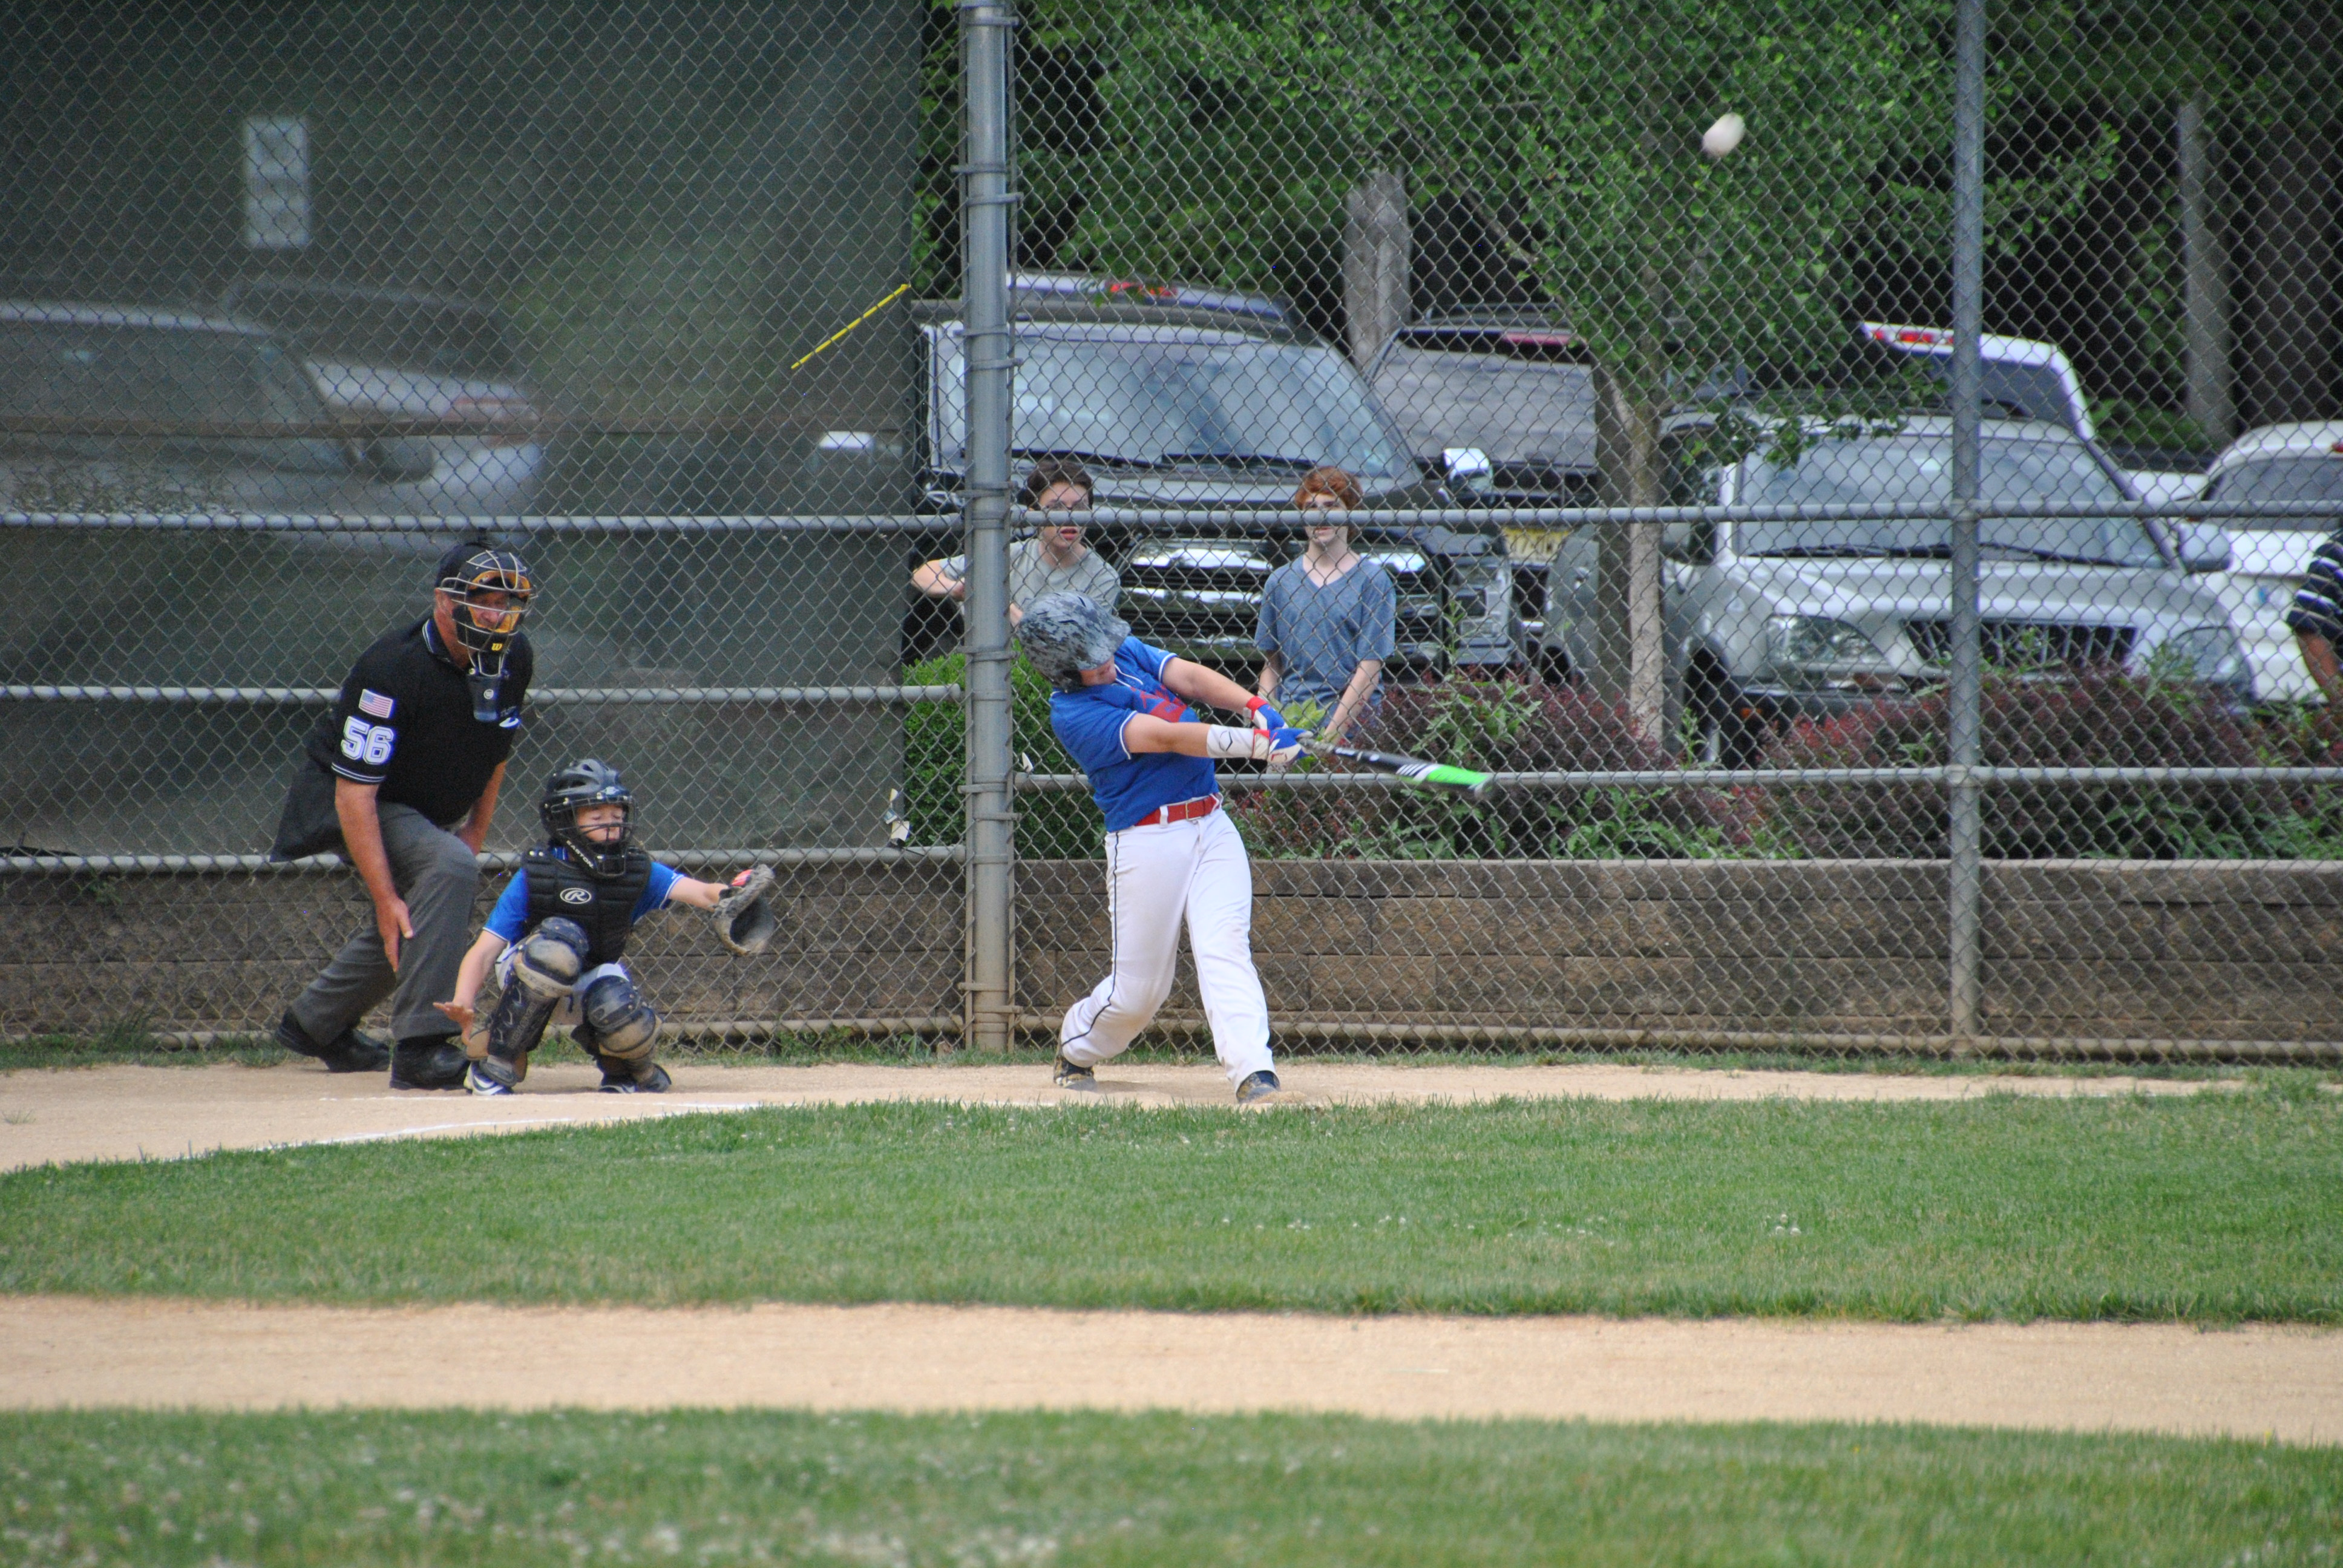 c995031159fd115c94d0_Brendan_Mariani_hits_one_out_of_the_park.JPG